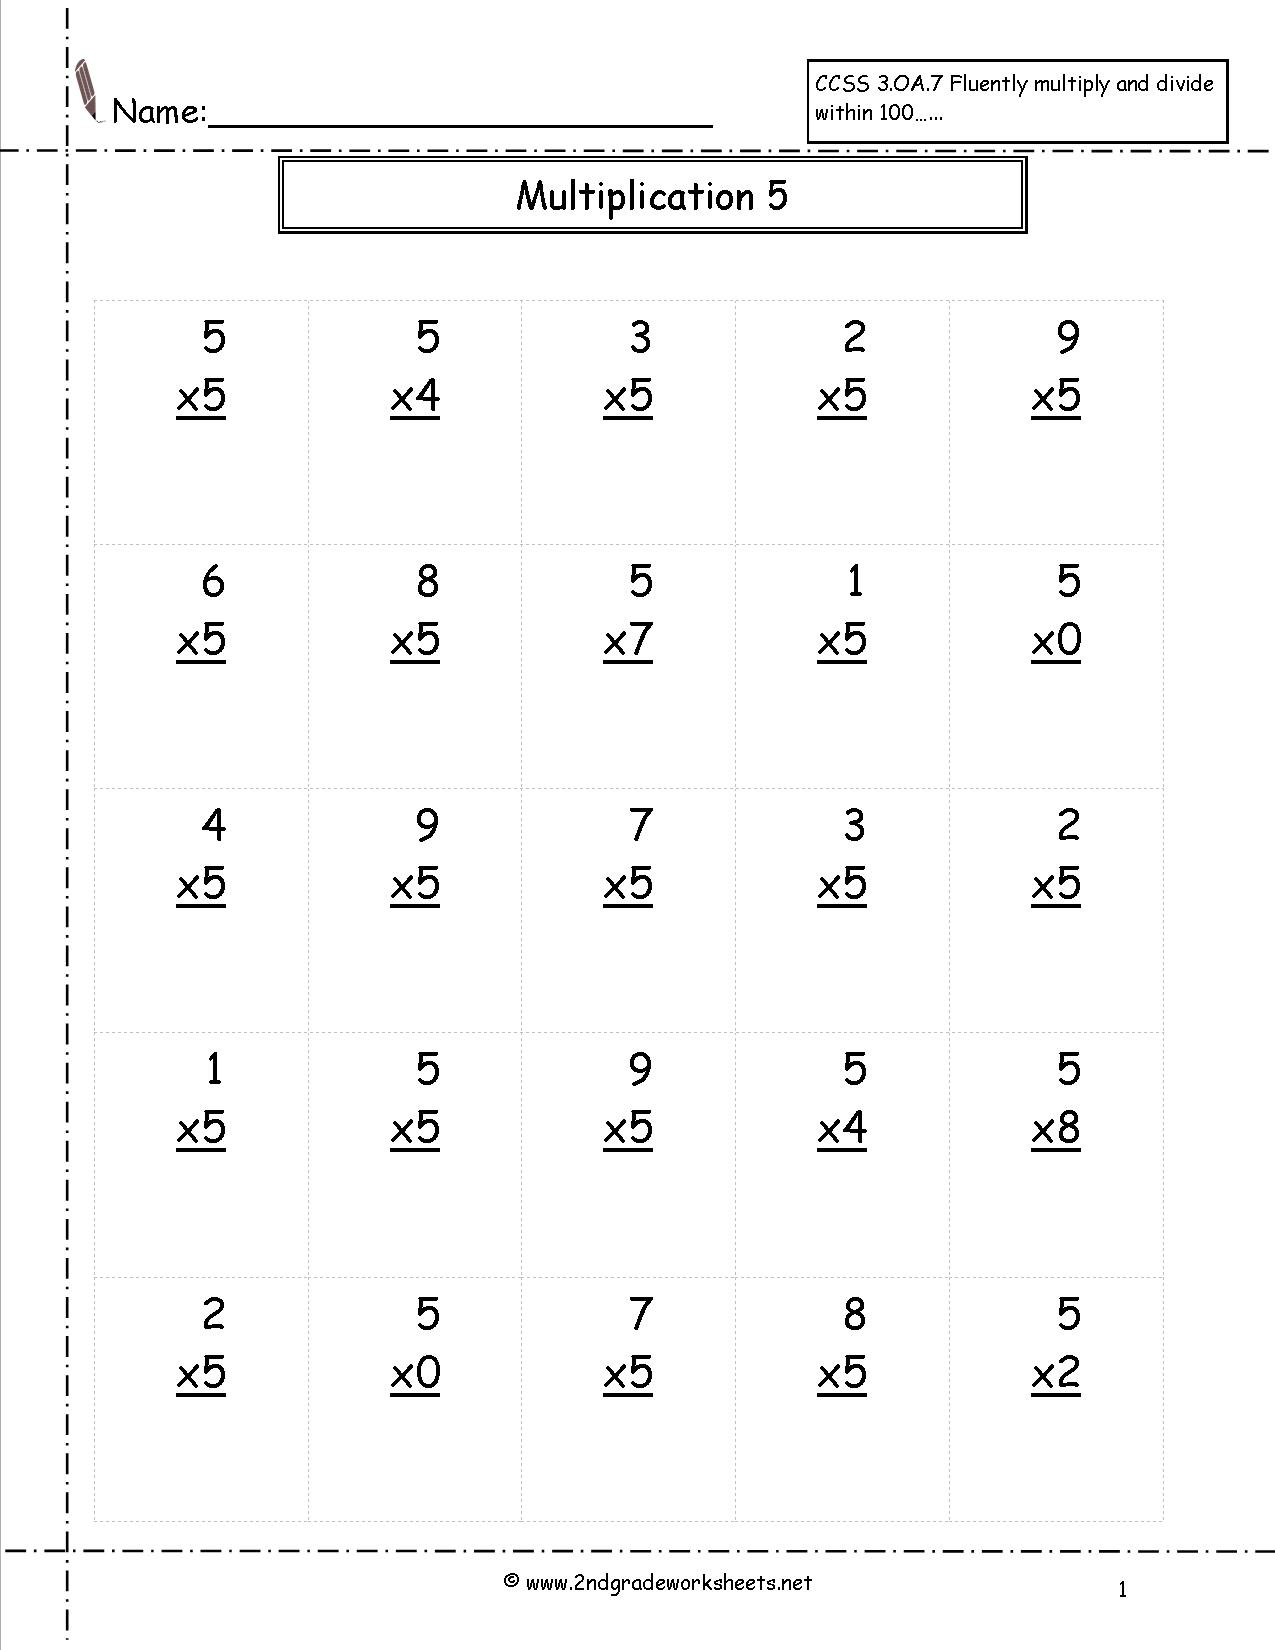 Multiplication Worksheets And Printouts | Basic Multiplication Printable Worksheets